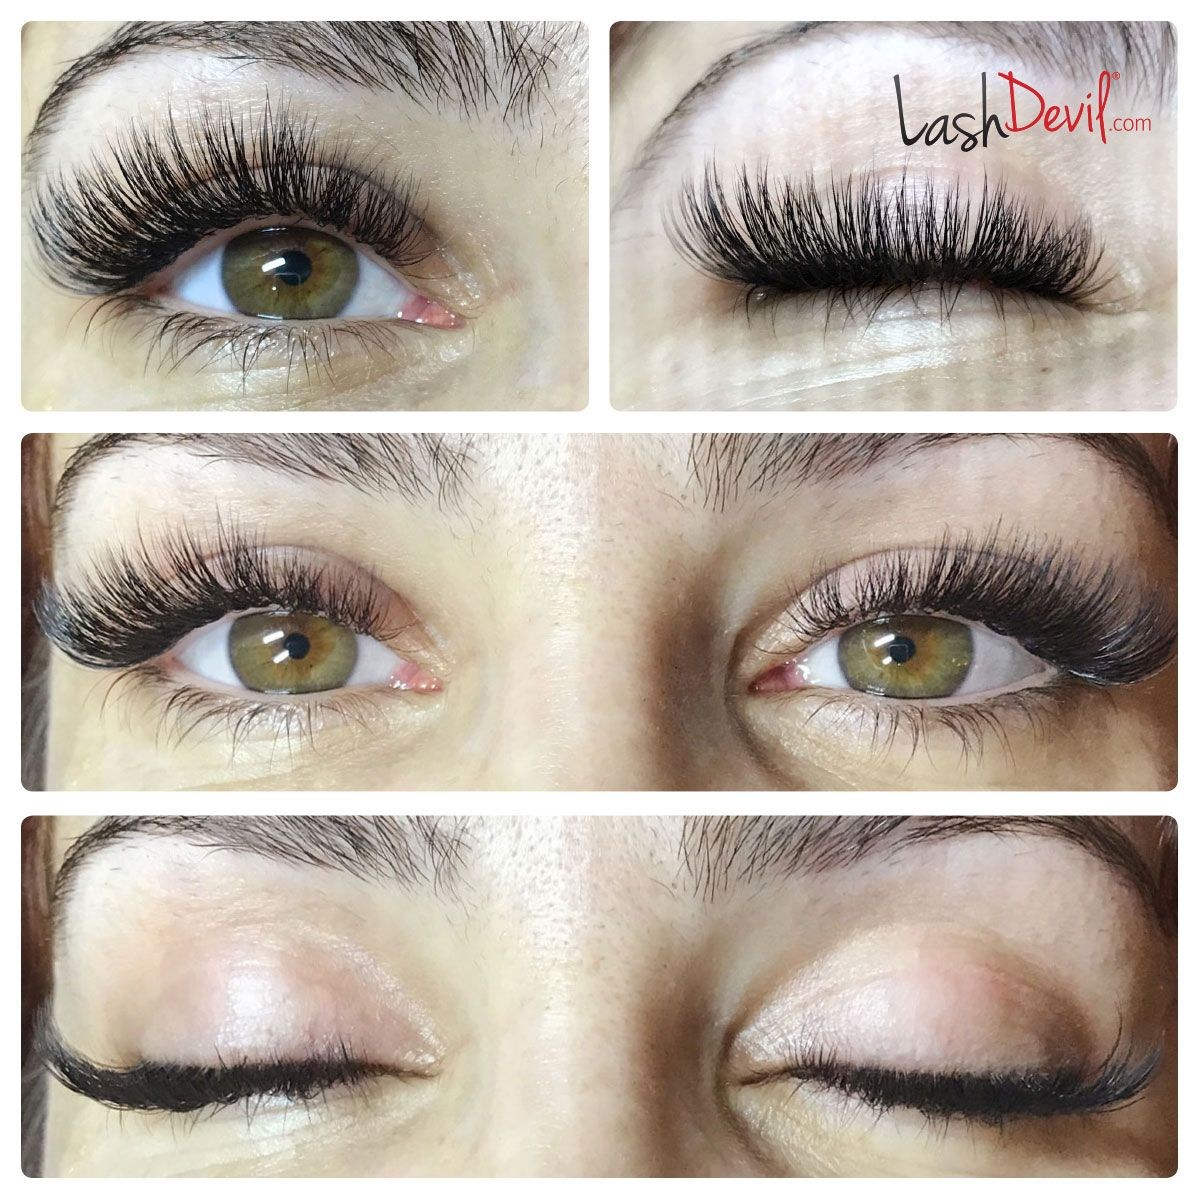 BEAUTIFUL EYELASH EXTENSIONS - BEFORE AND AFTER | b e a u t y ...